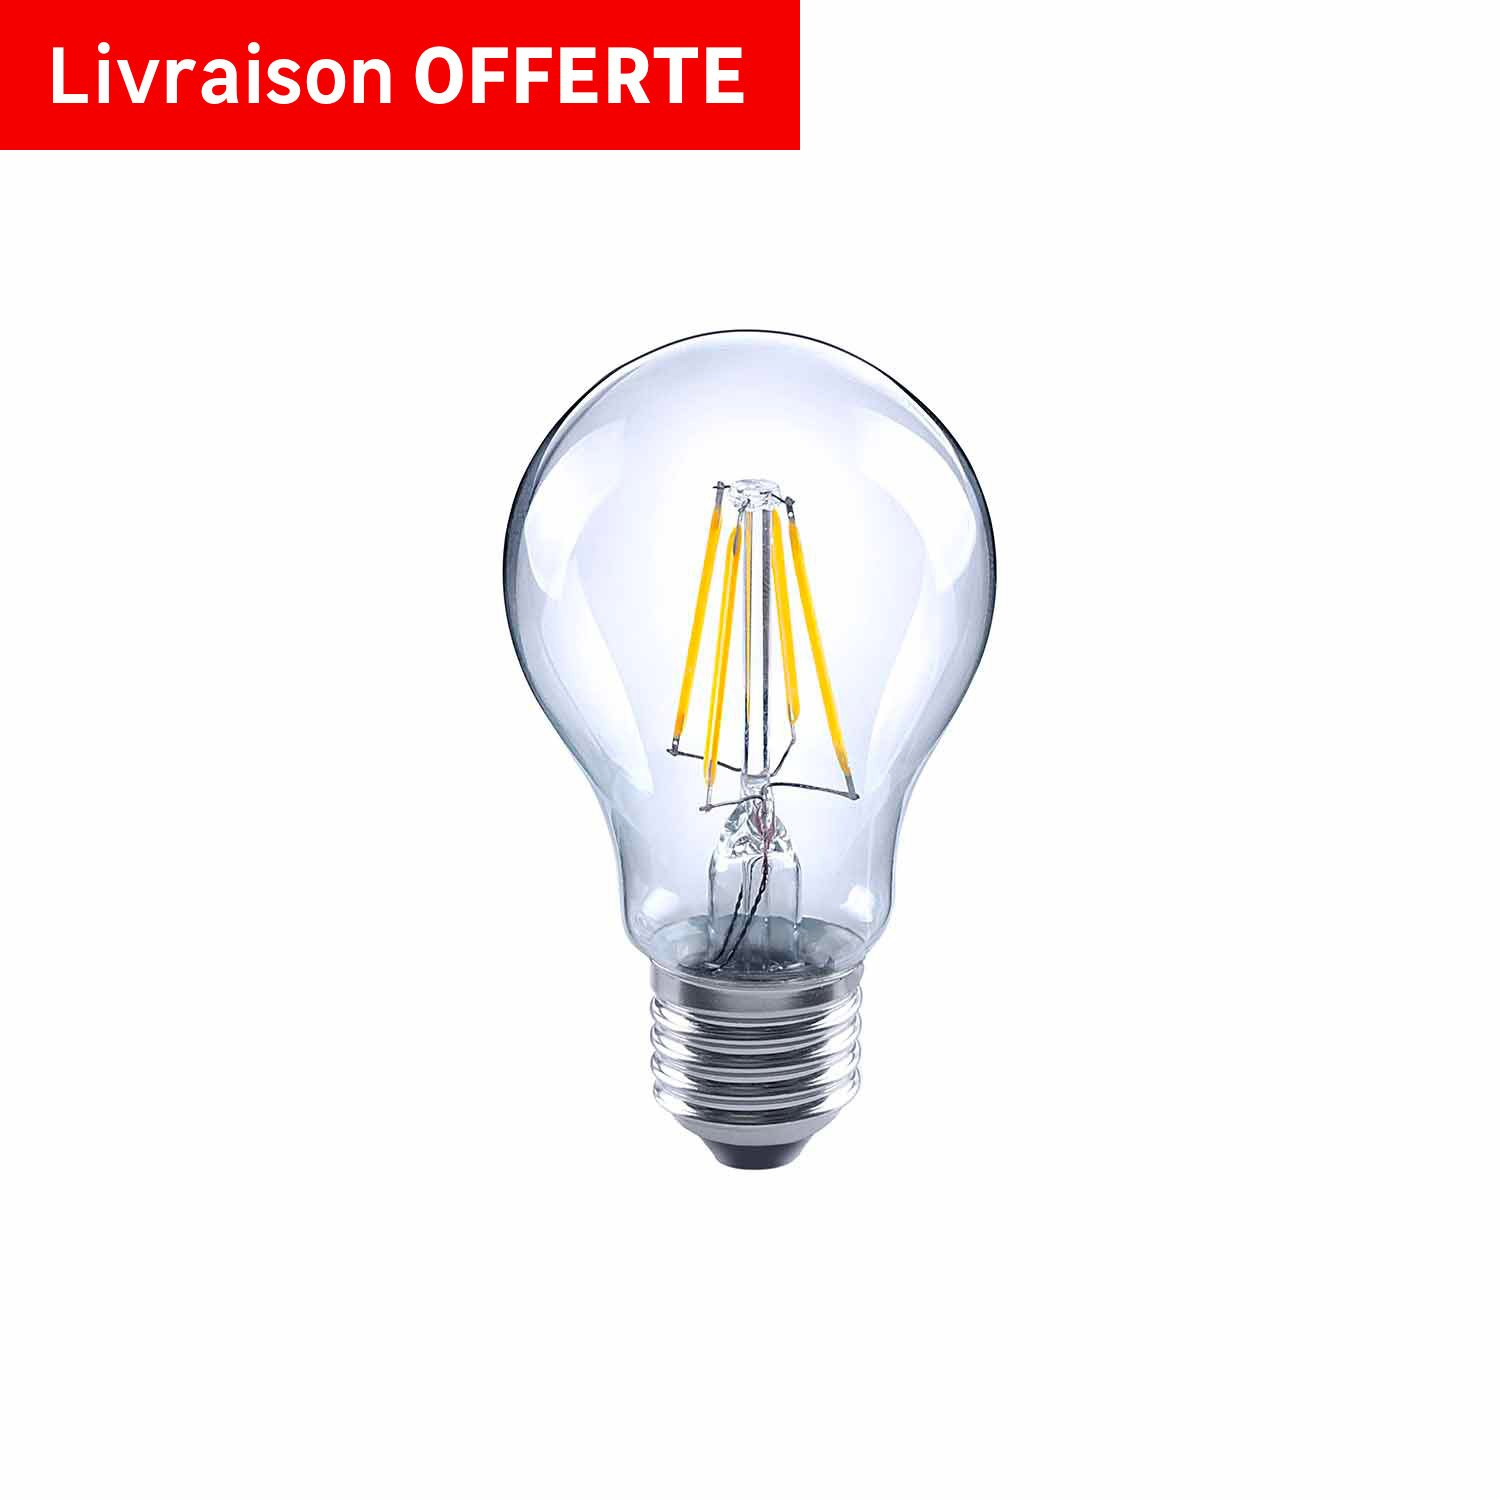 ampoule filament standard led 7w 806lm quiv 60w e27 4000k 360 lexman leroy merlin. Black Bedroom Furniture Sets. Home Design Ideas